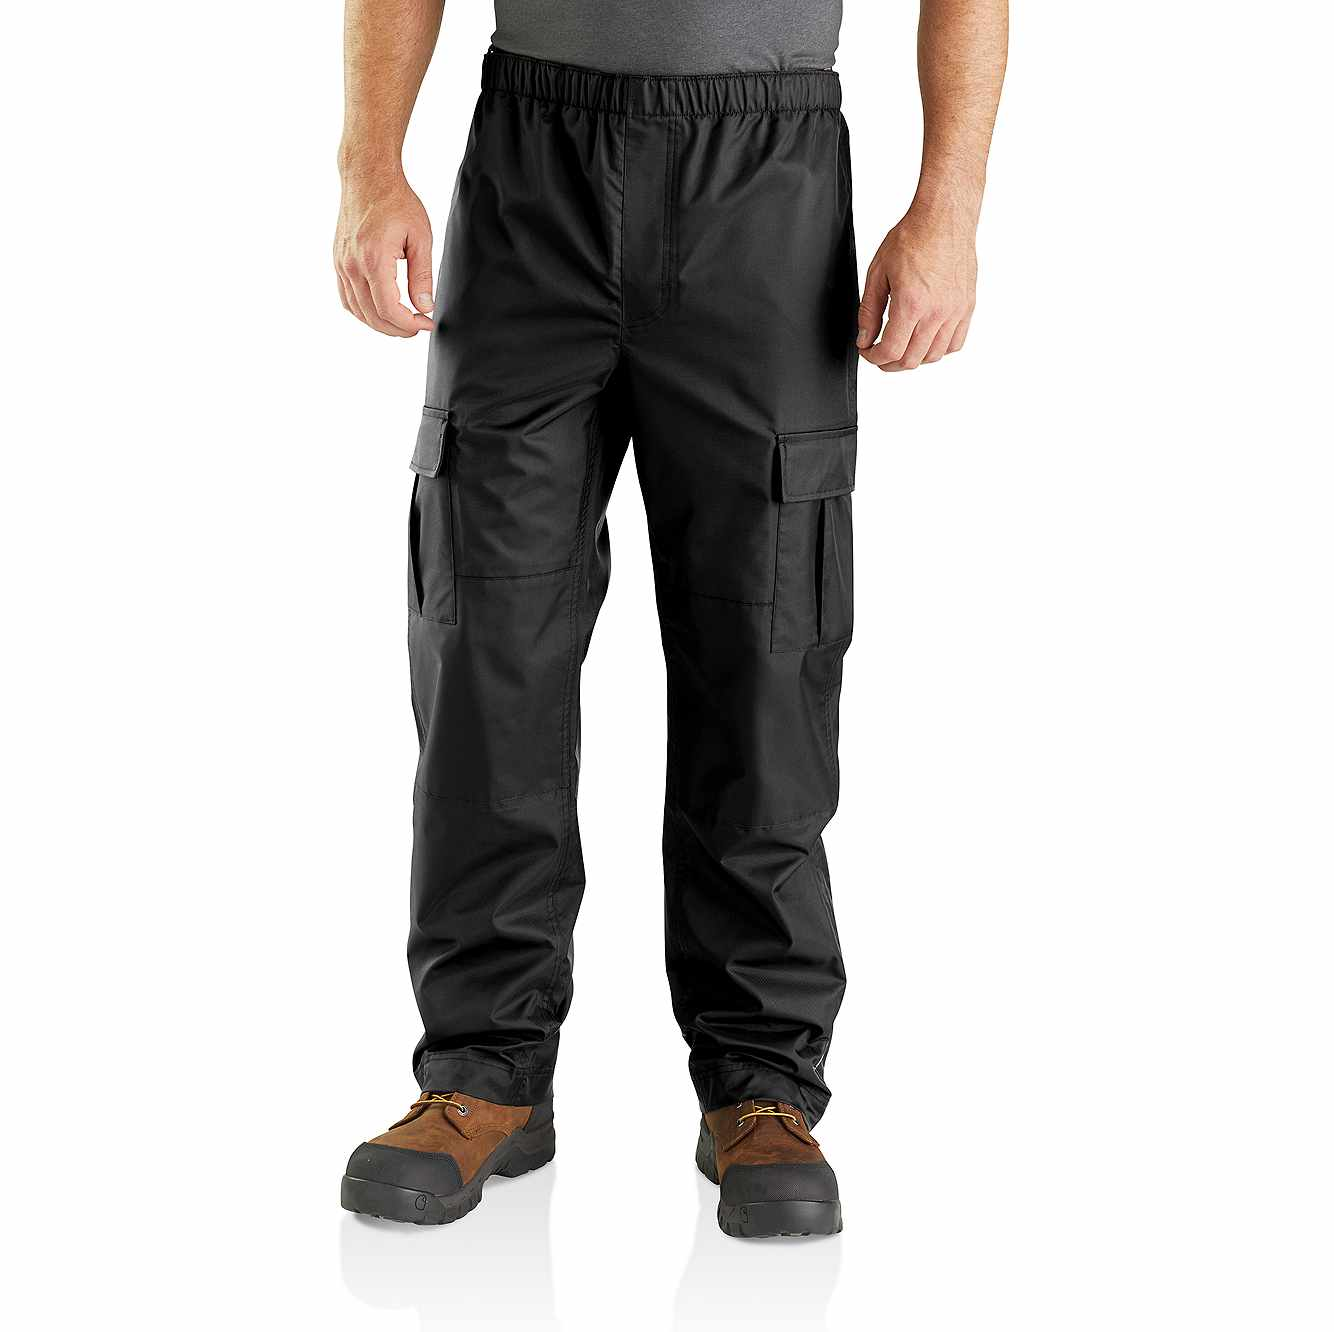 Picture of Dry Harbor Waterproof Breathable Pant in Black